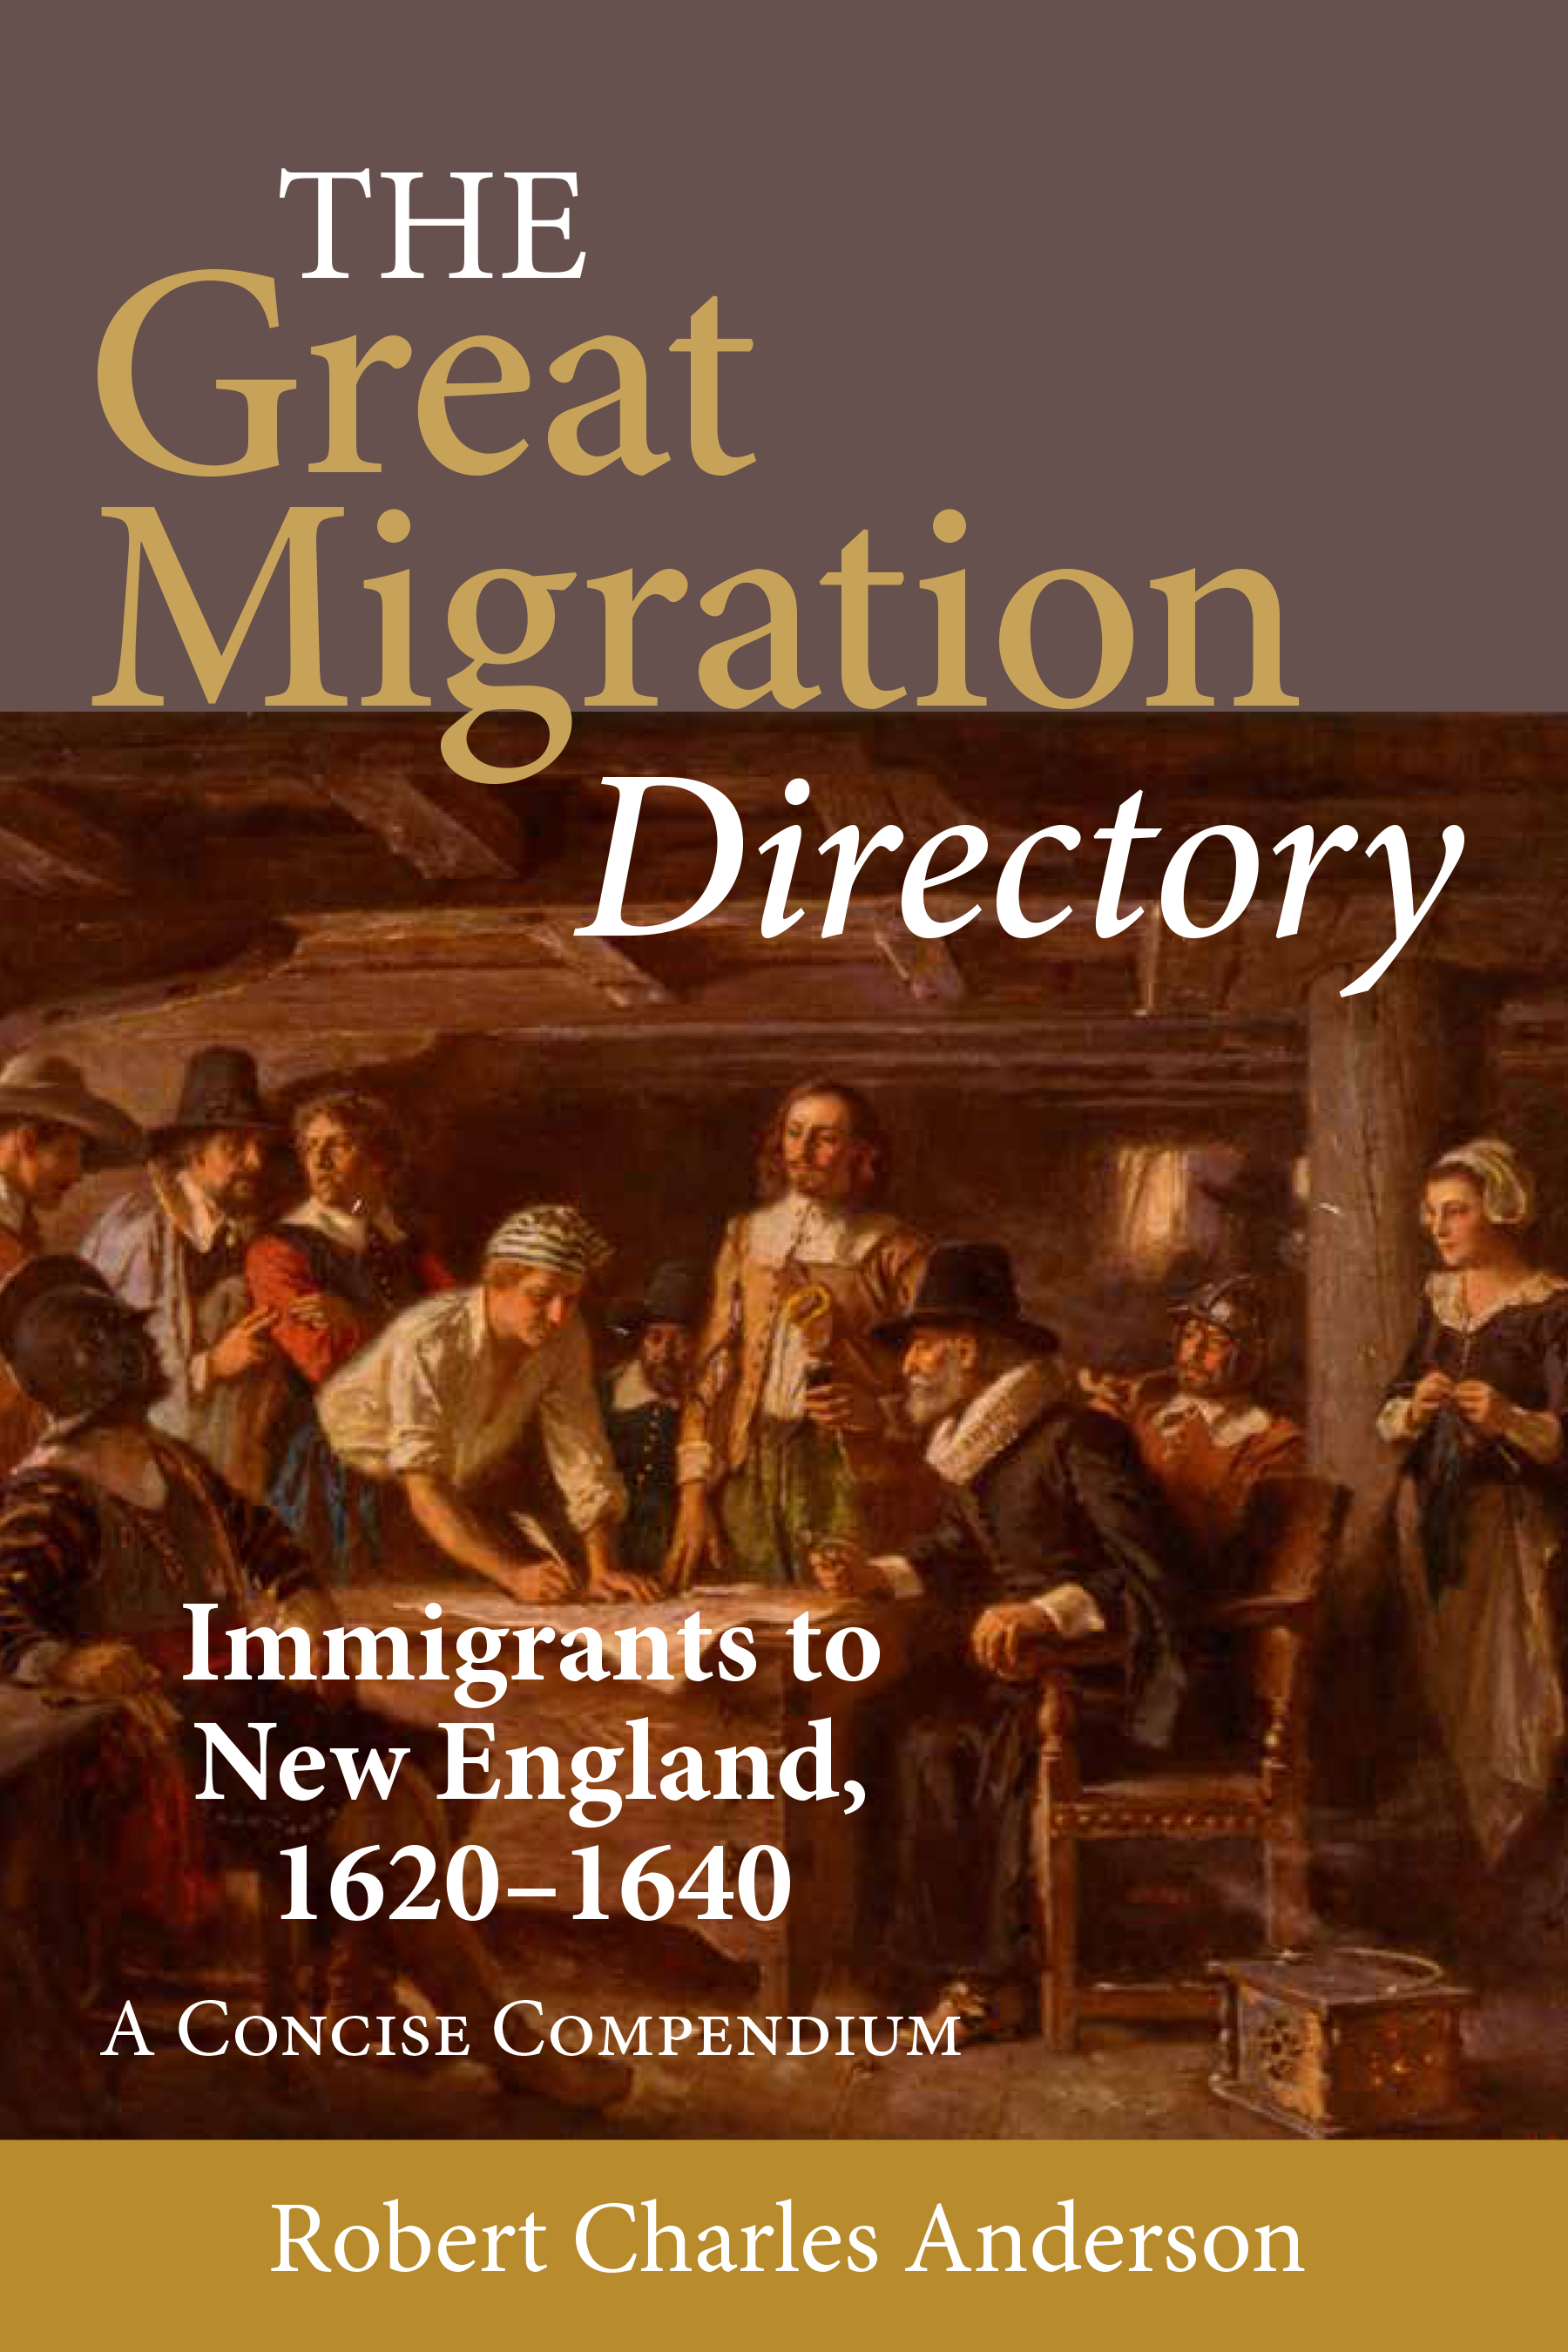 Introducing The Great Migration Directory - Vita Brevis